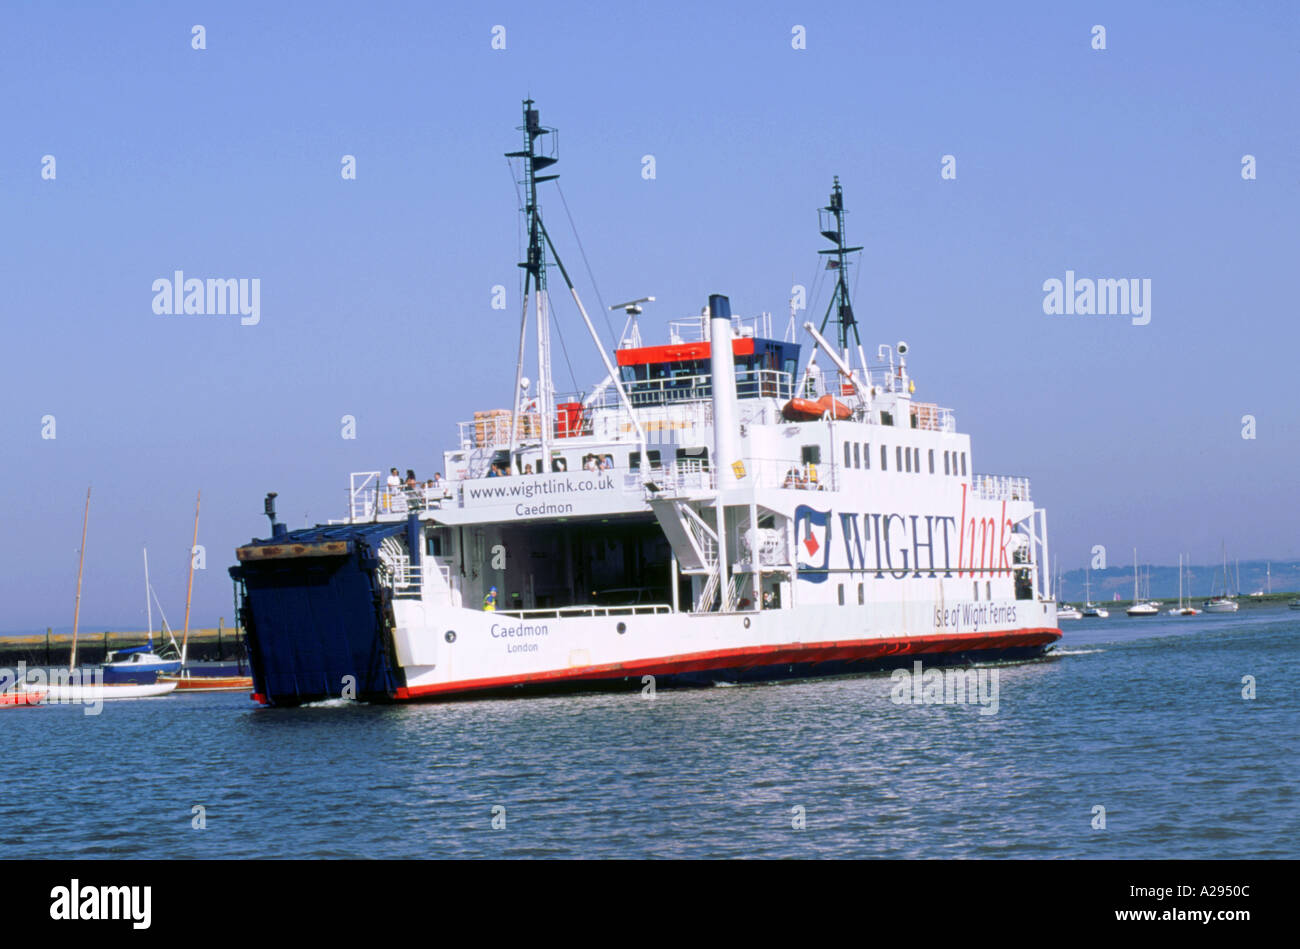 Lymington Car Ferry bound for Yarmouth Isle of Wight - Stock Image